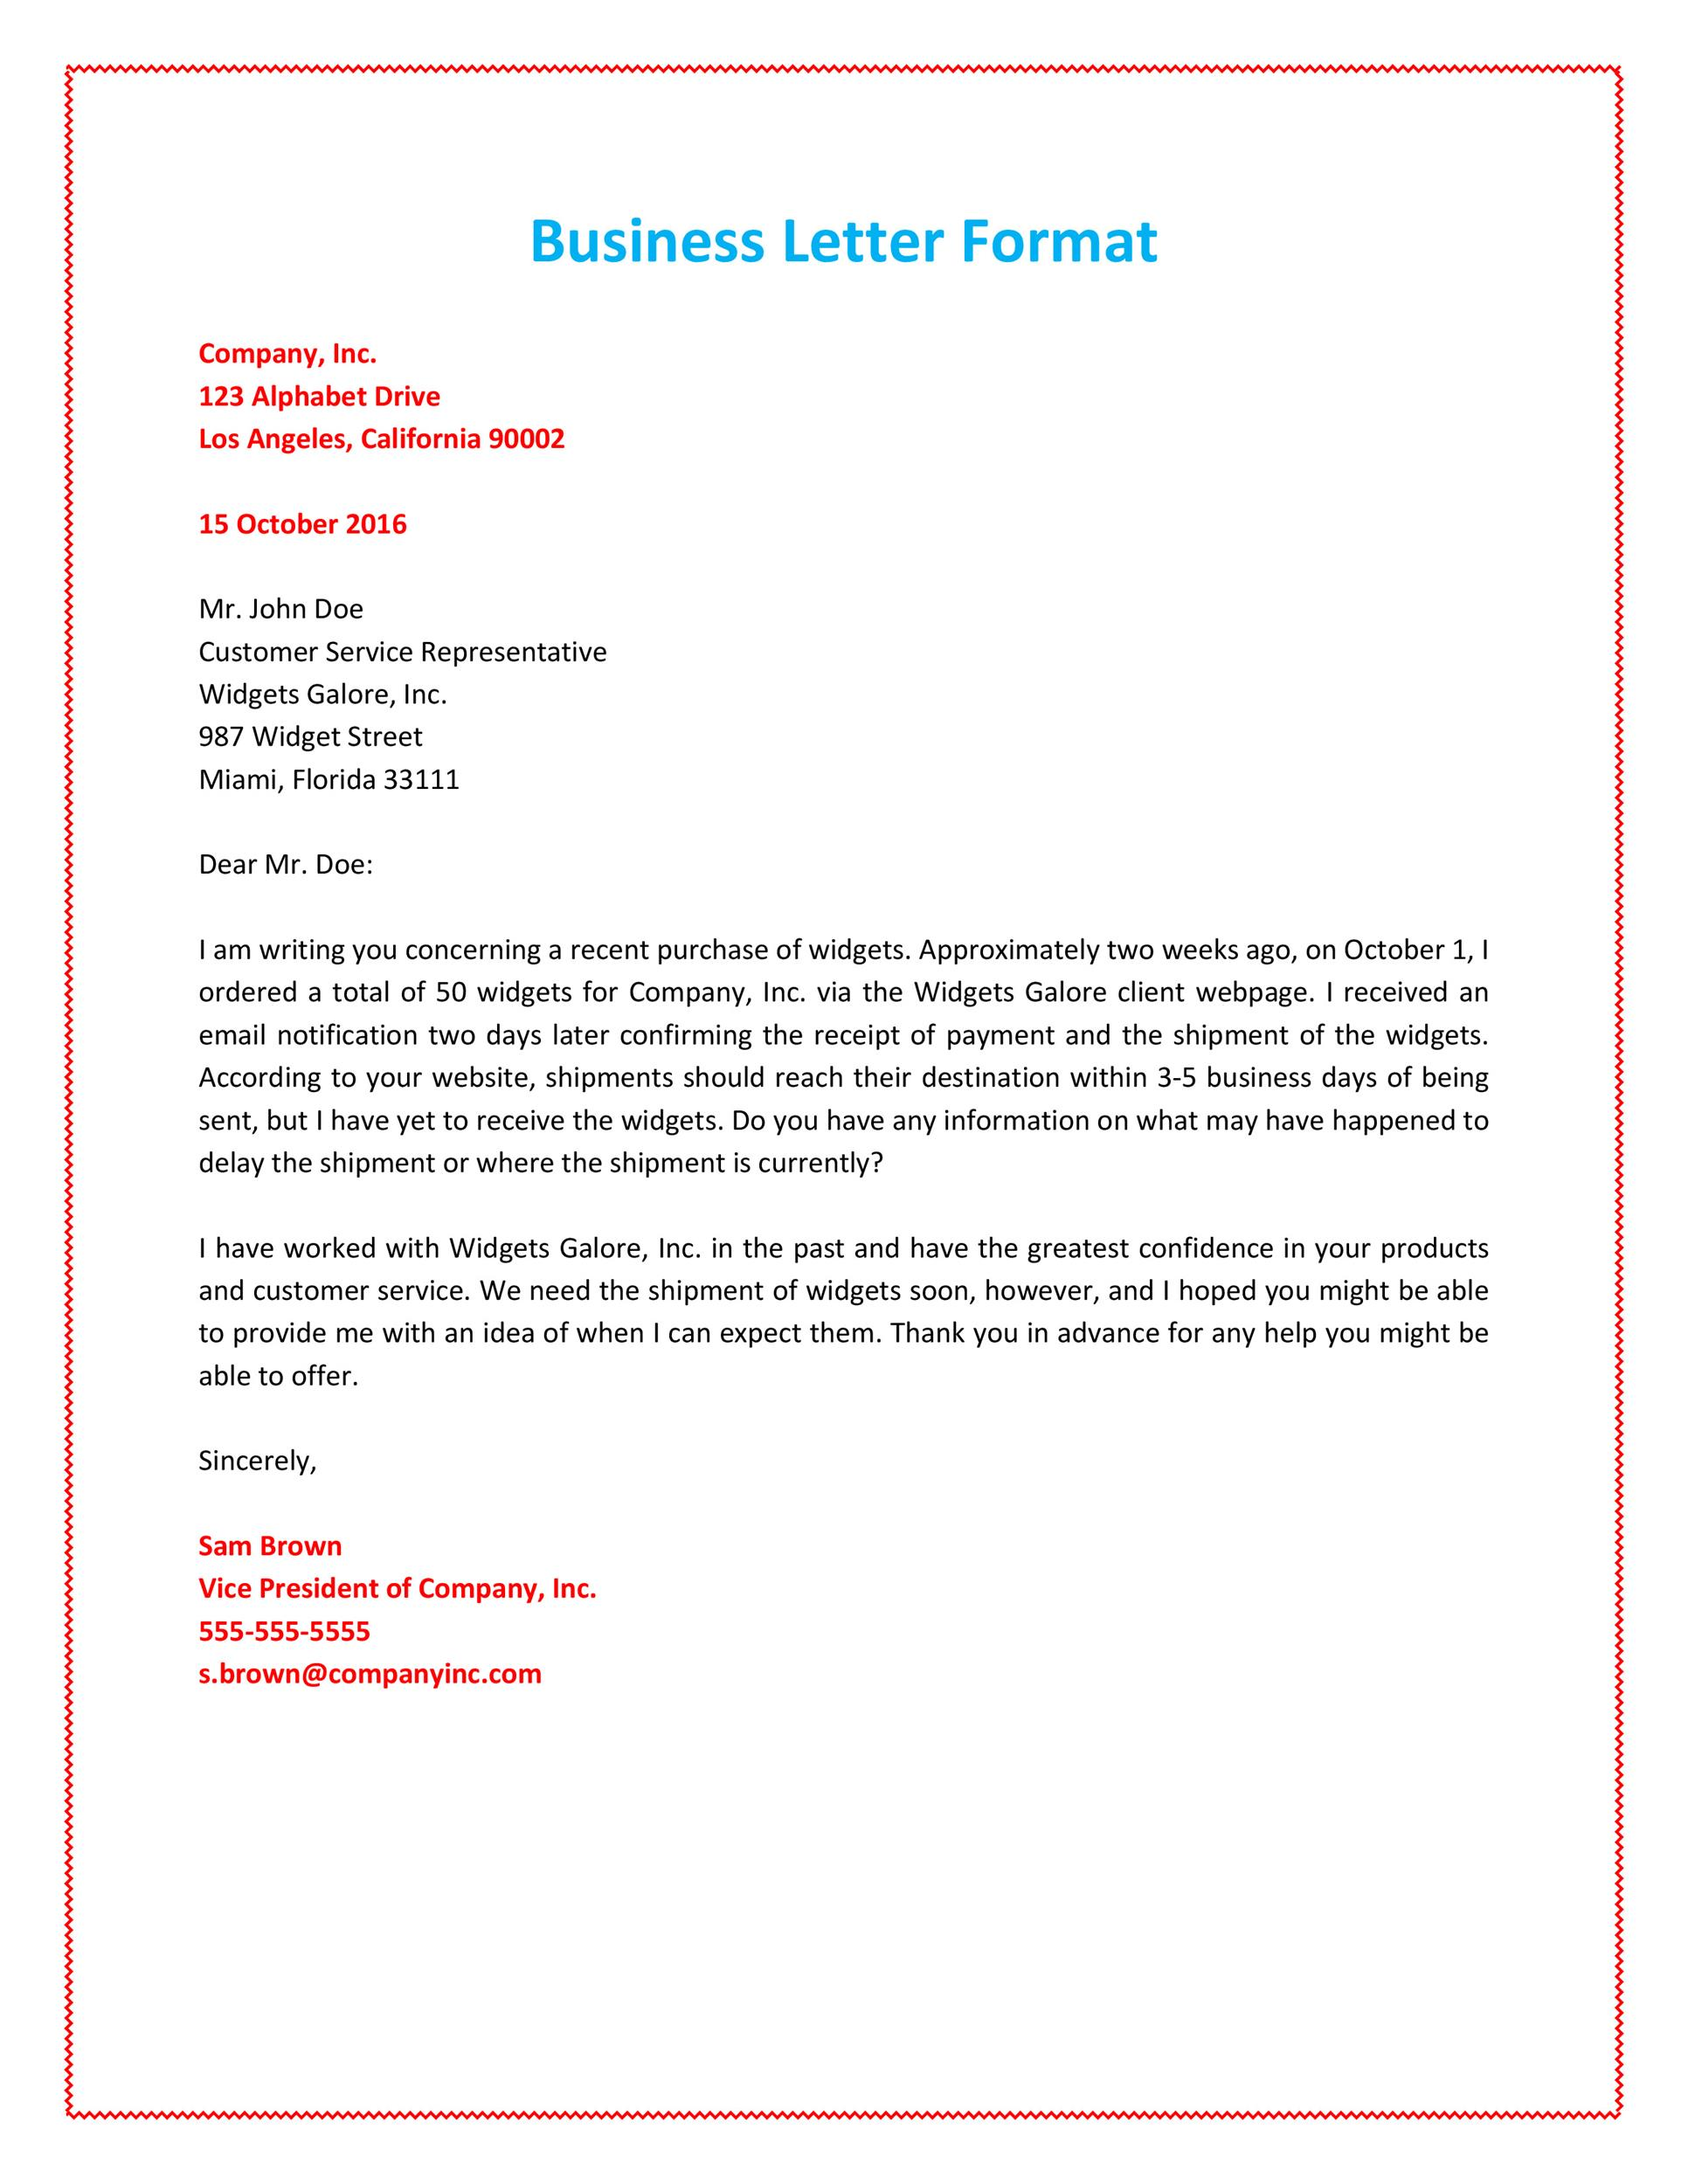 Business letters ukrandiffusion 35 formal business letter format templates examples template lab friedricerecipe Choice Image